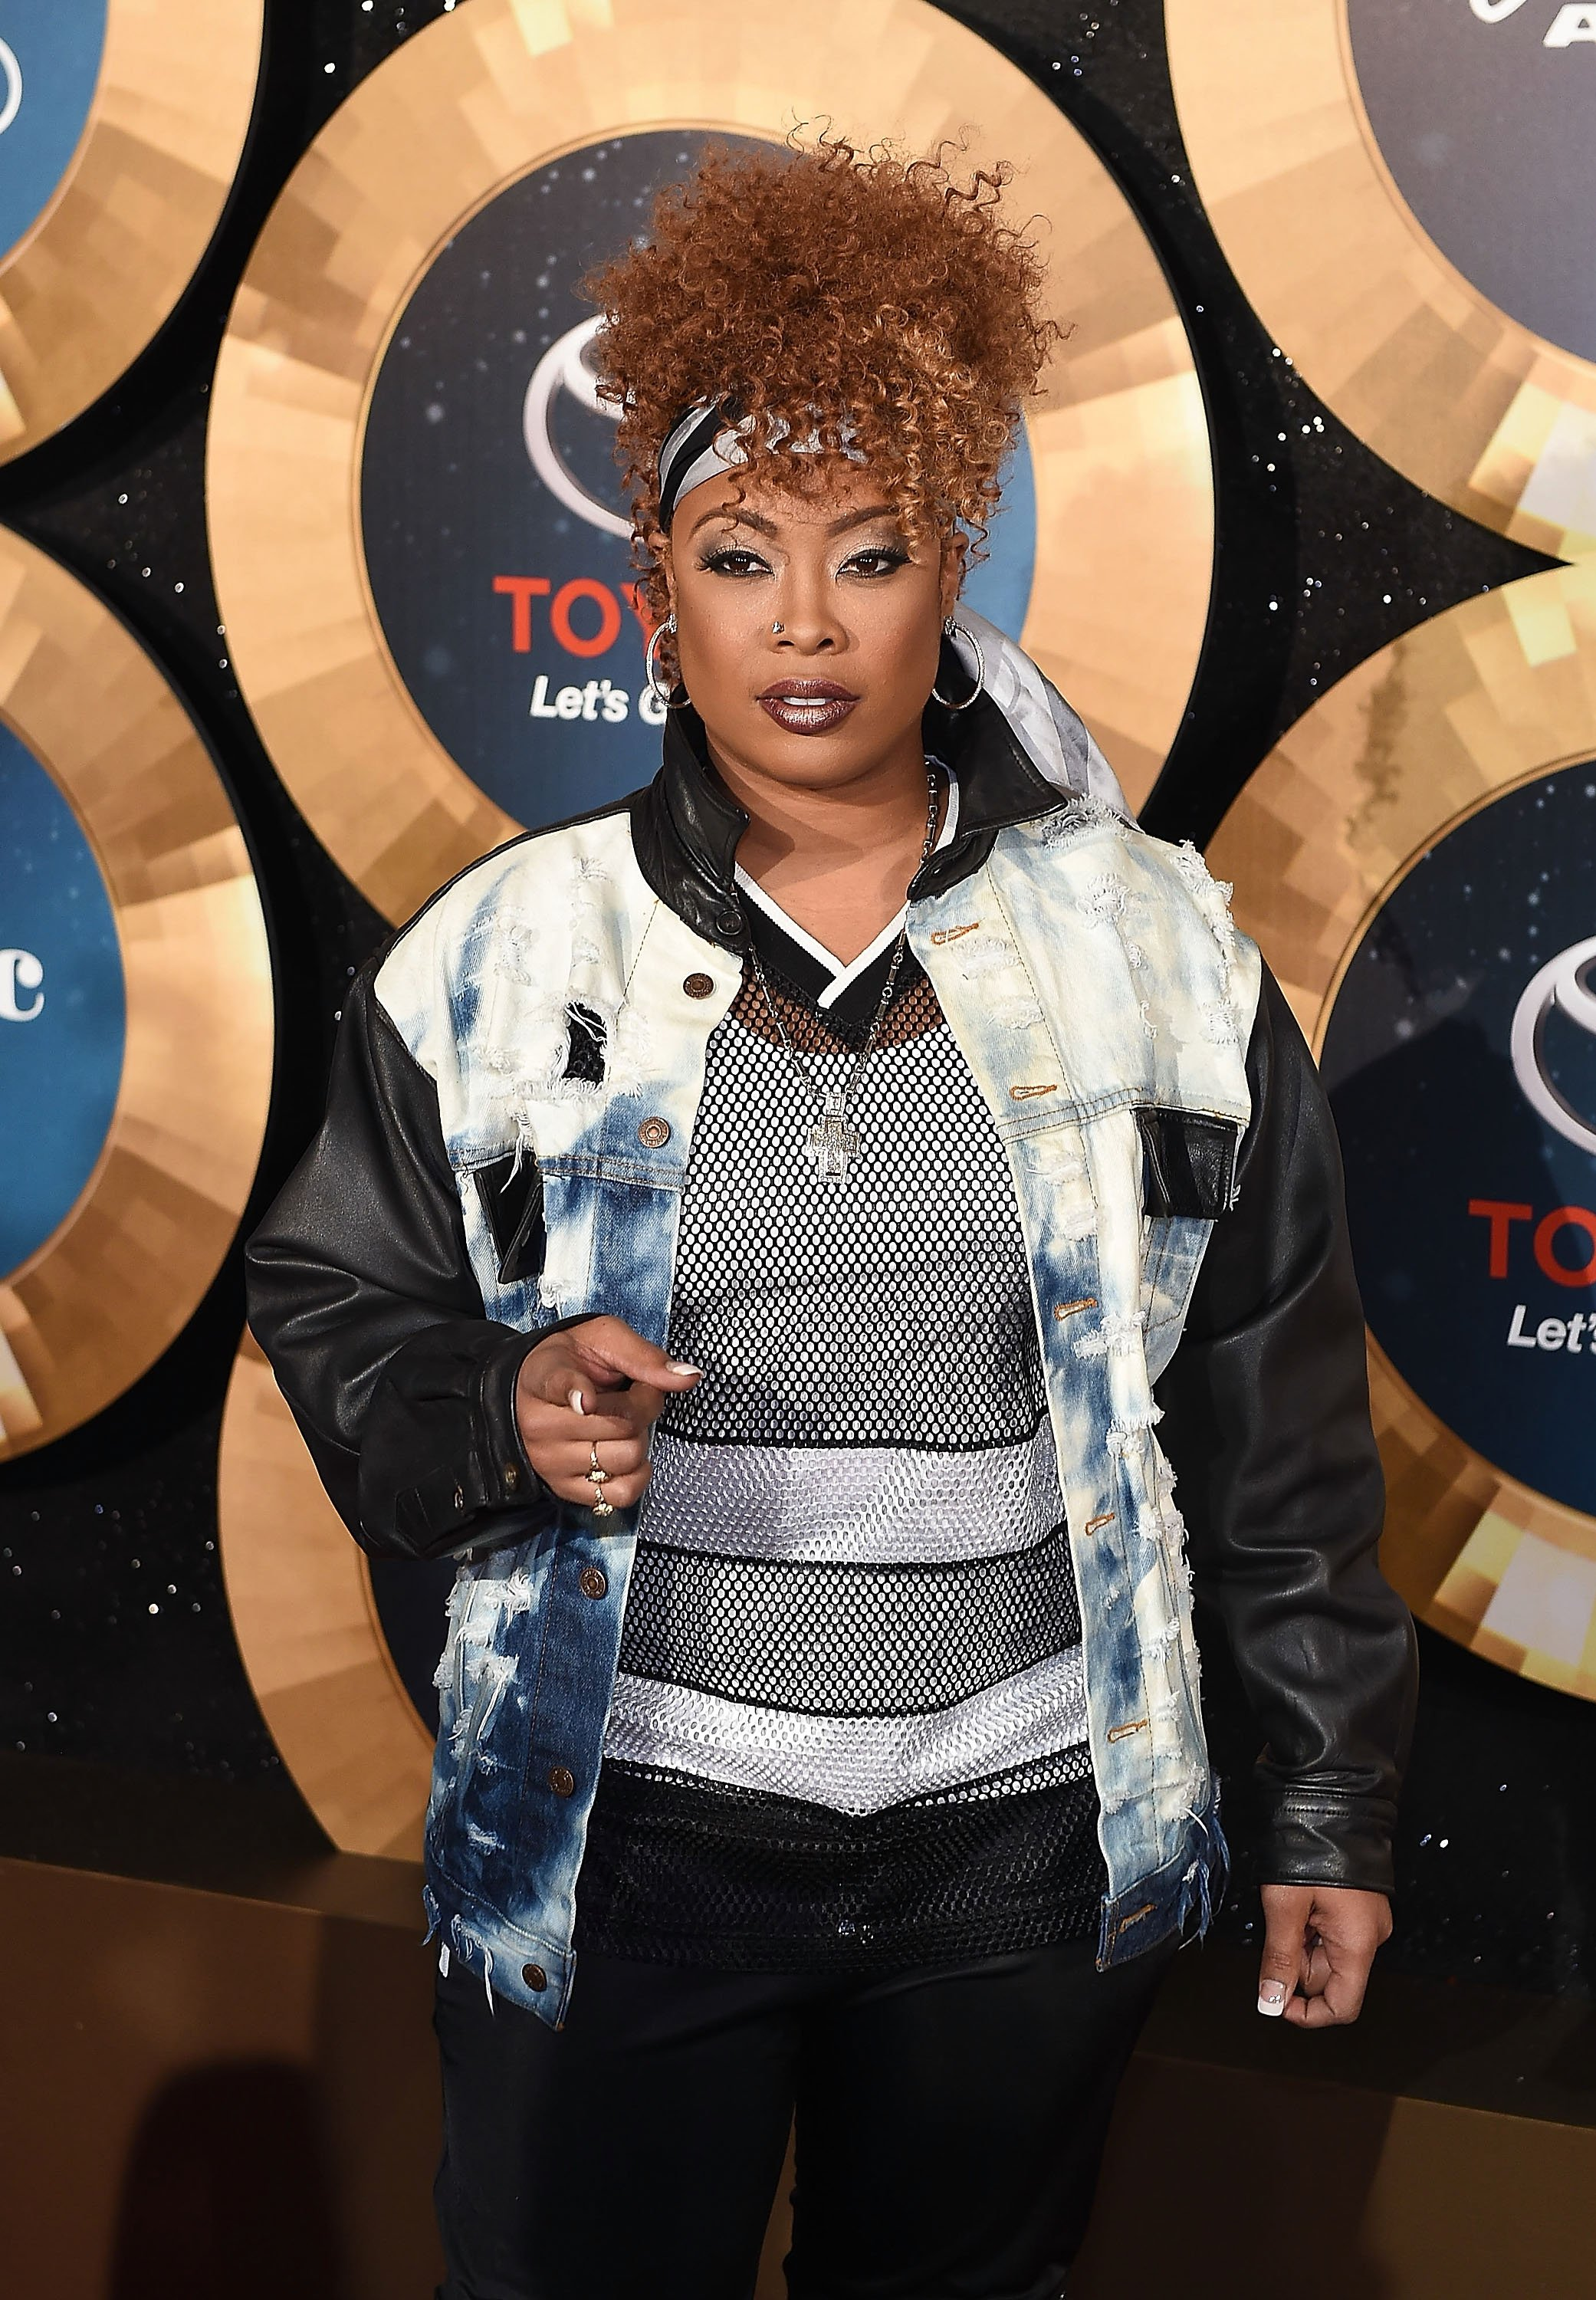 DaBrat attending the 2014 Soul Train Music Awards in November 2014. | Photo: GettyImages